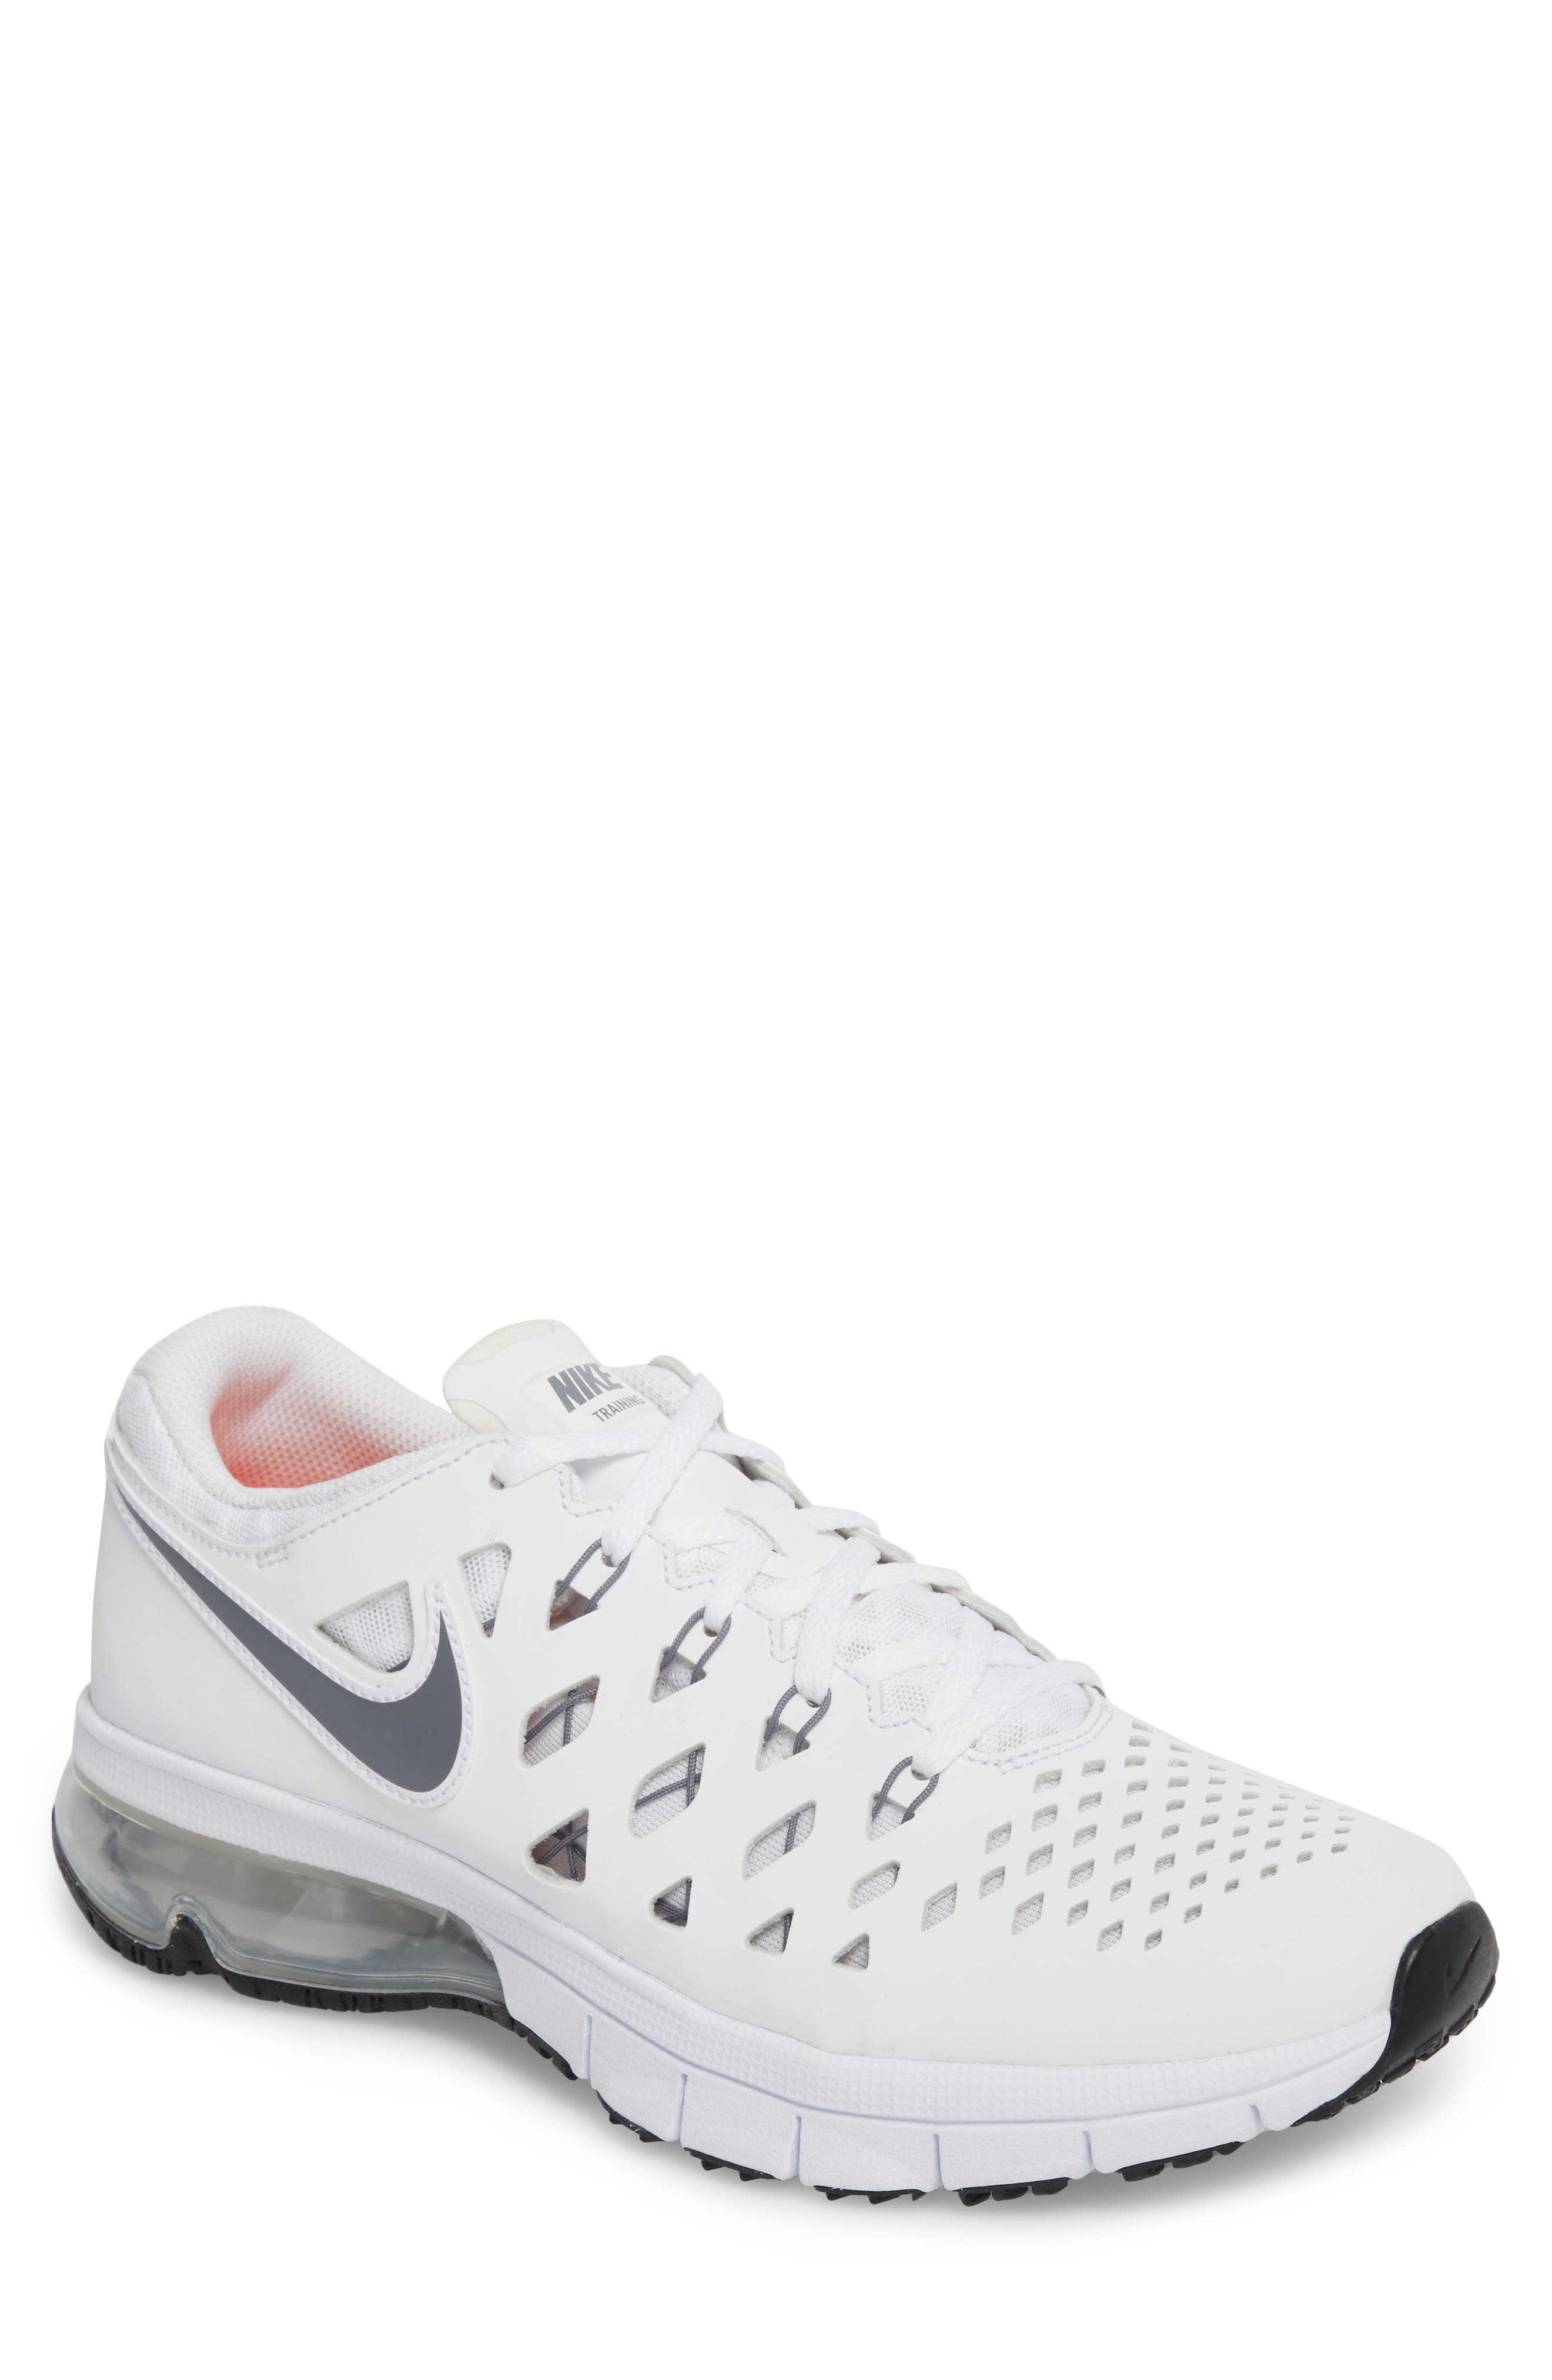 Air Trainer 180 Training Shoe,                         Main,                         color, White/ Cool Grey-Black